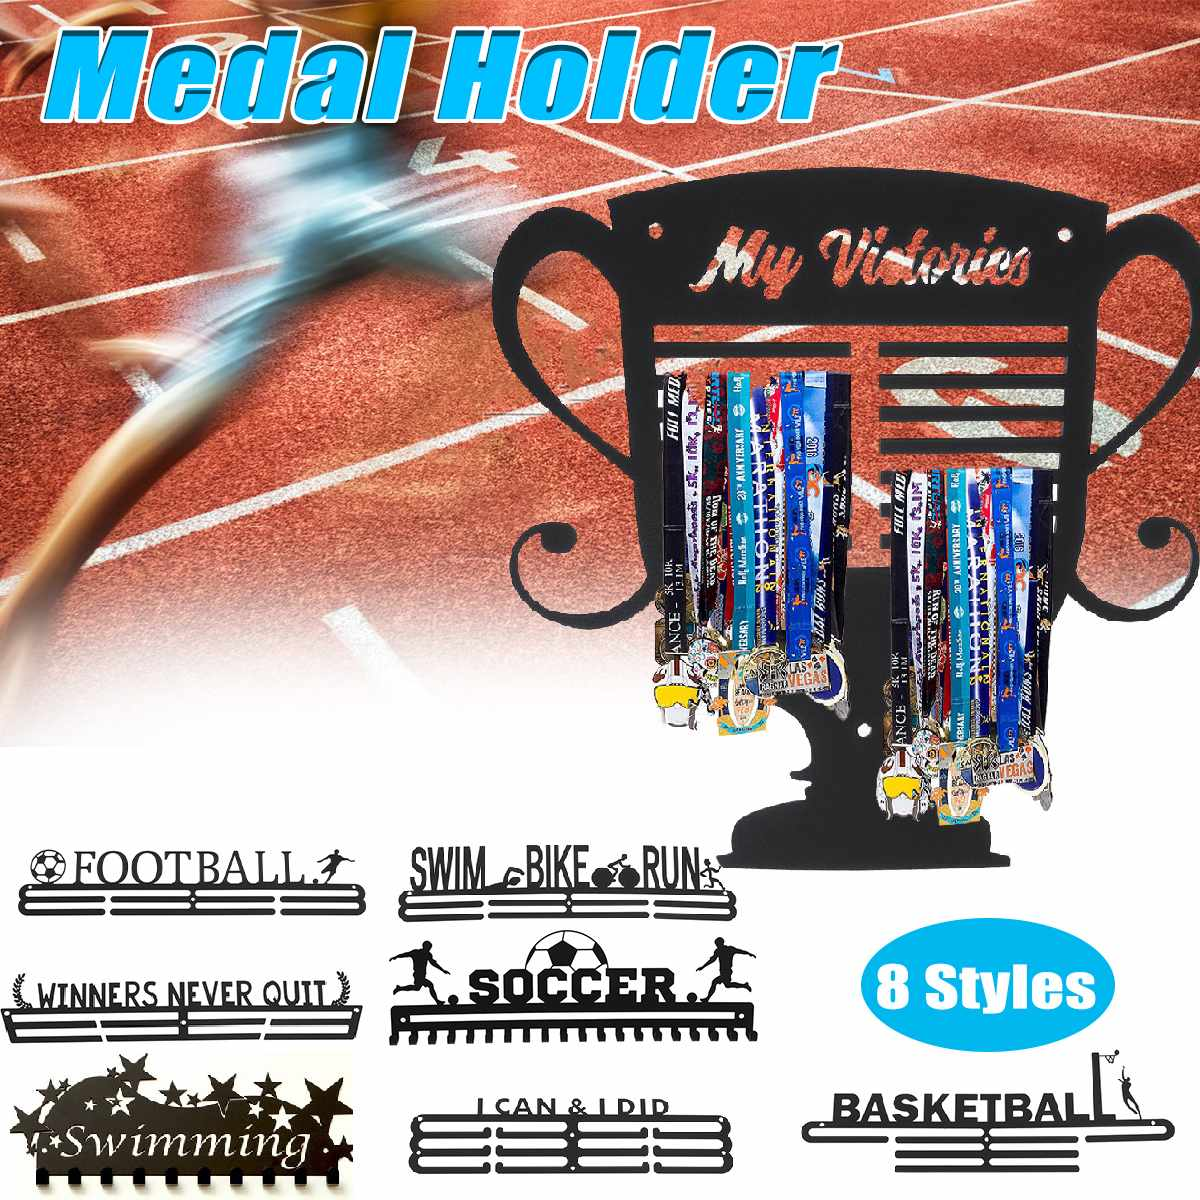 Stainless Steel Medal Hanger Medal Holder Display Rack Running Swimming Gymnastics Marathons Soccer Sport Medal Gift Decoration